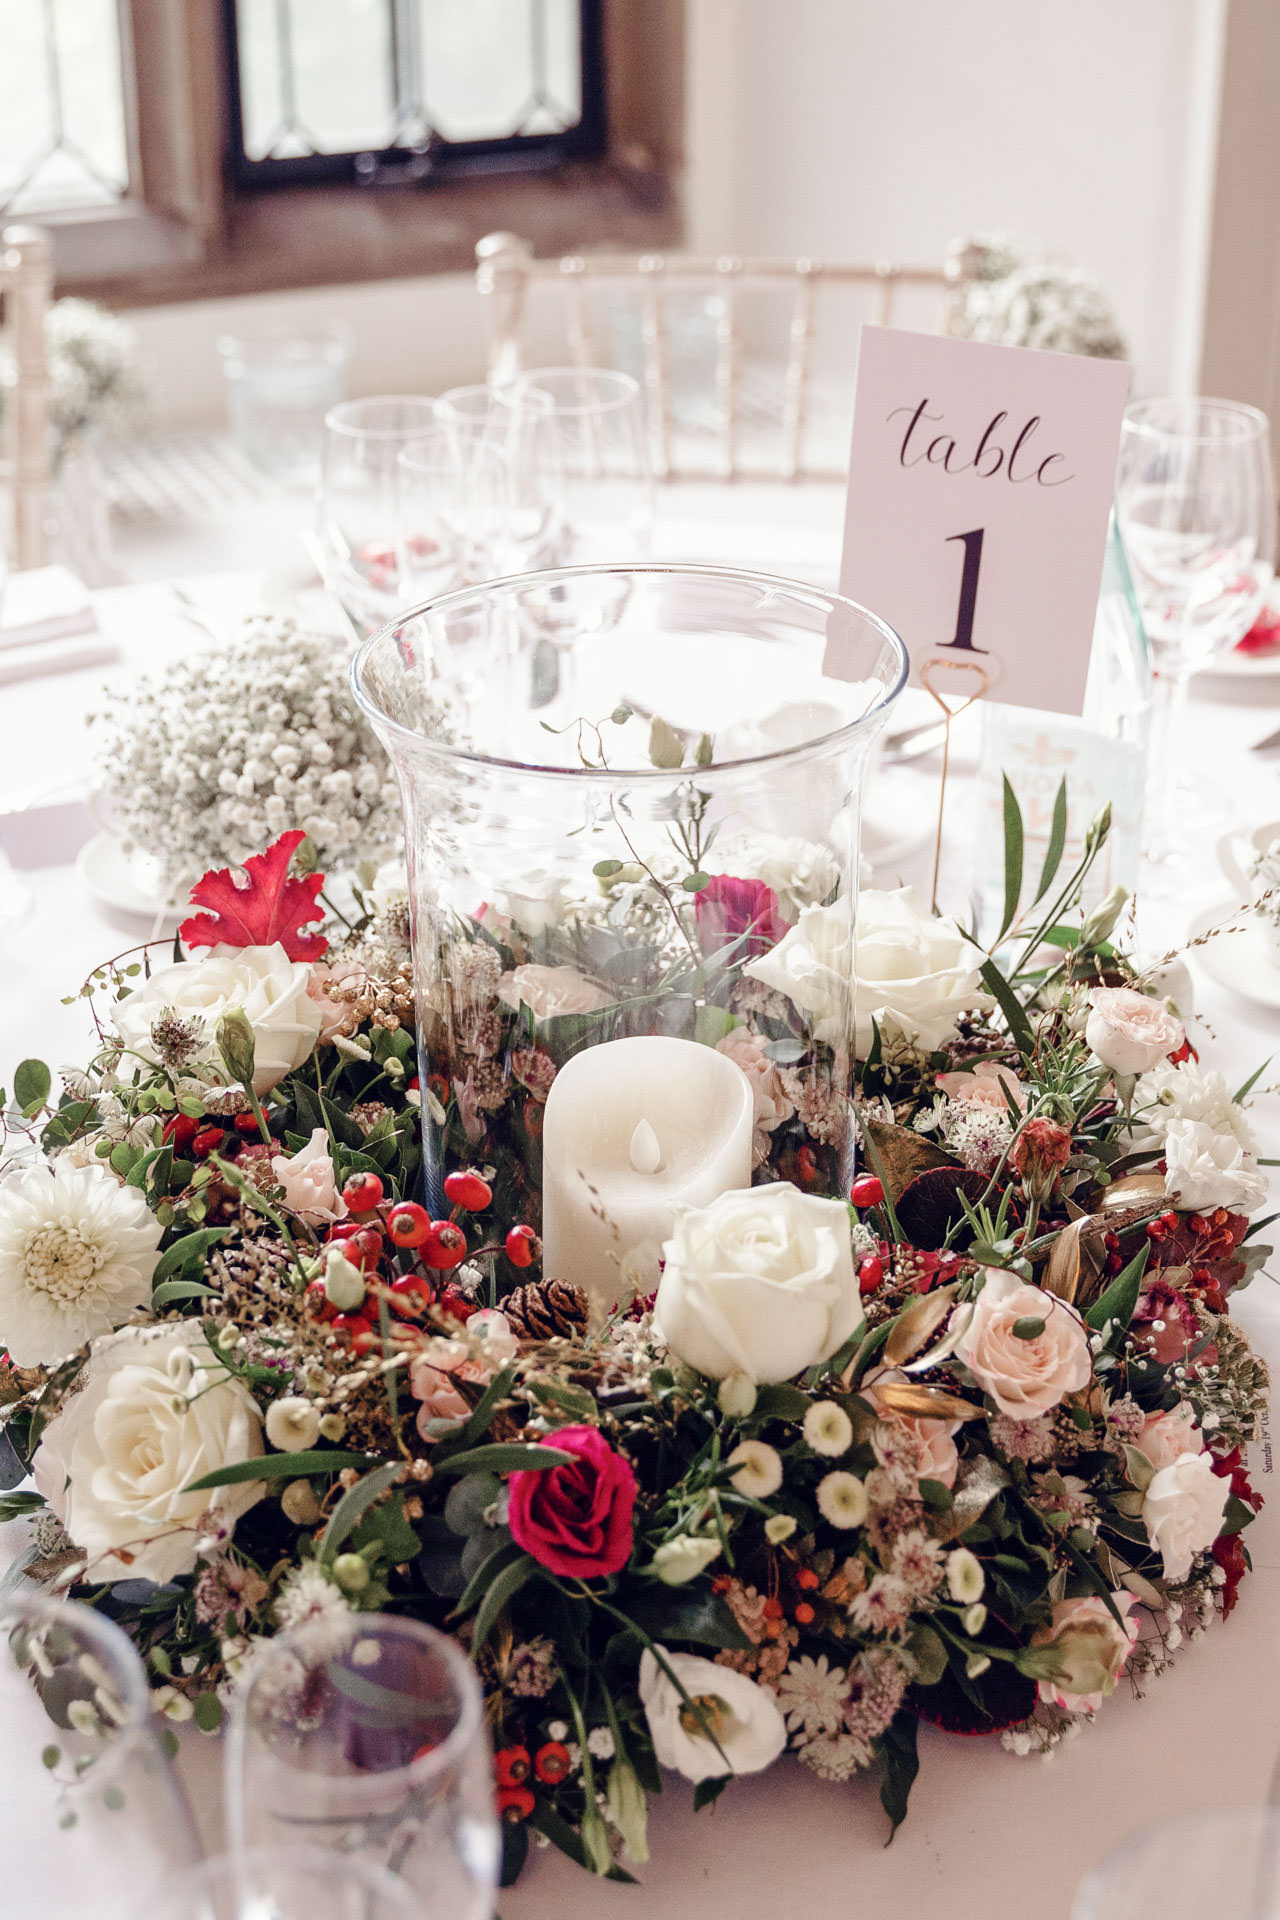 The low table arrangments look equally gorgeous!